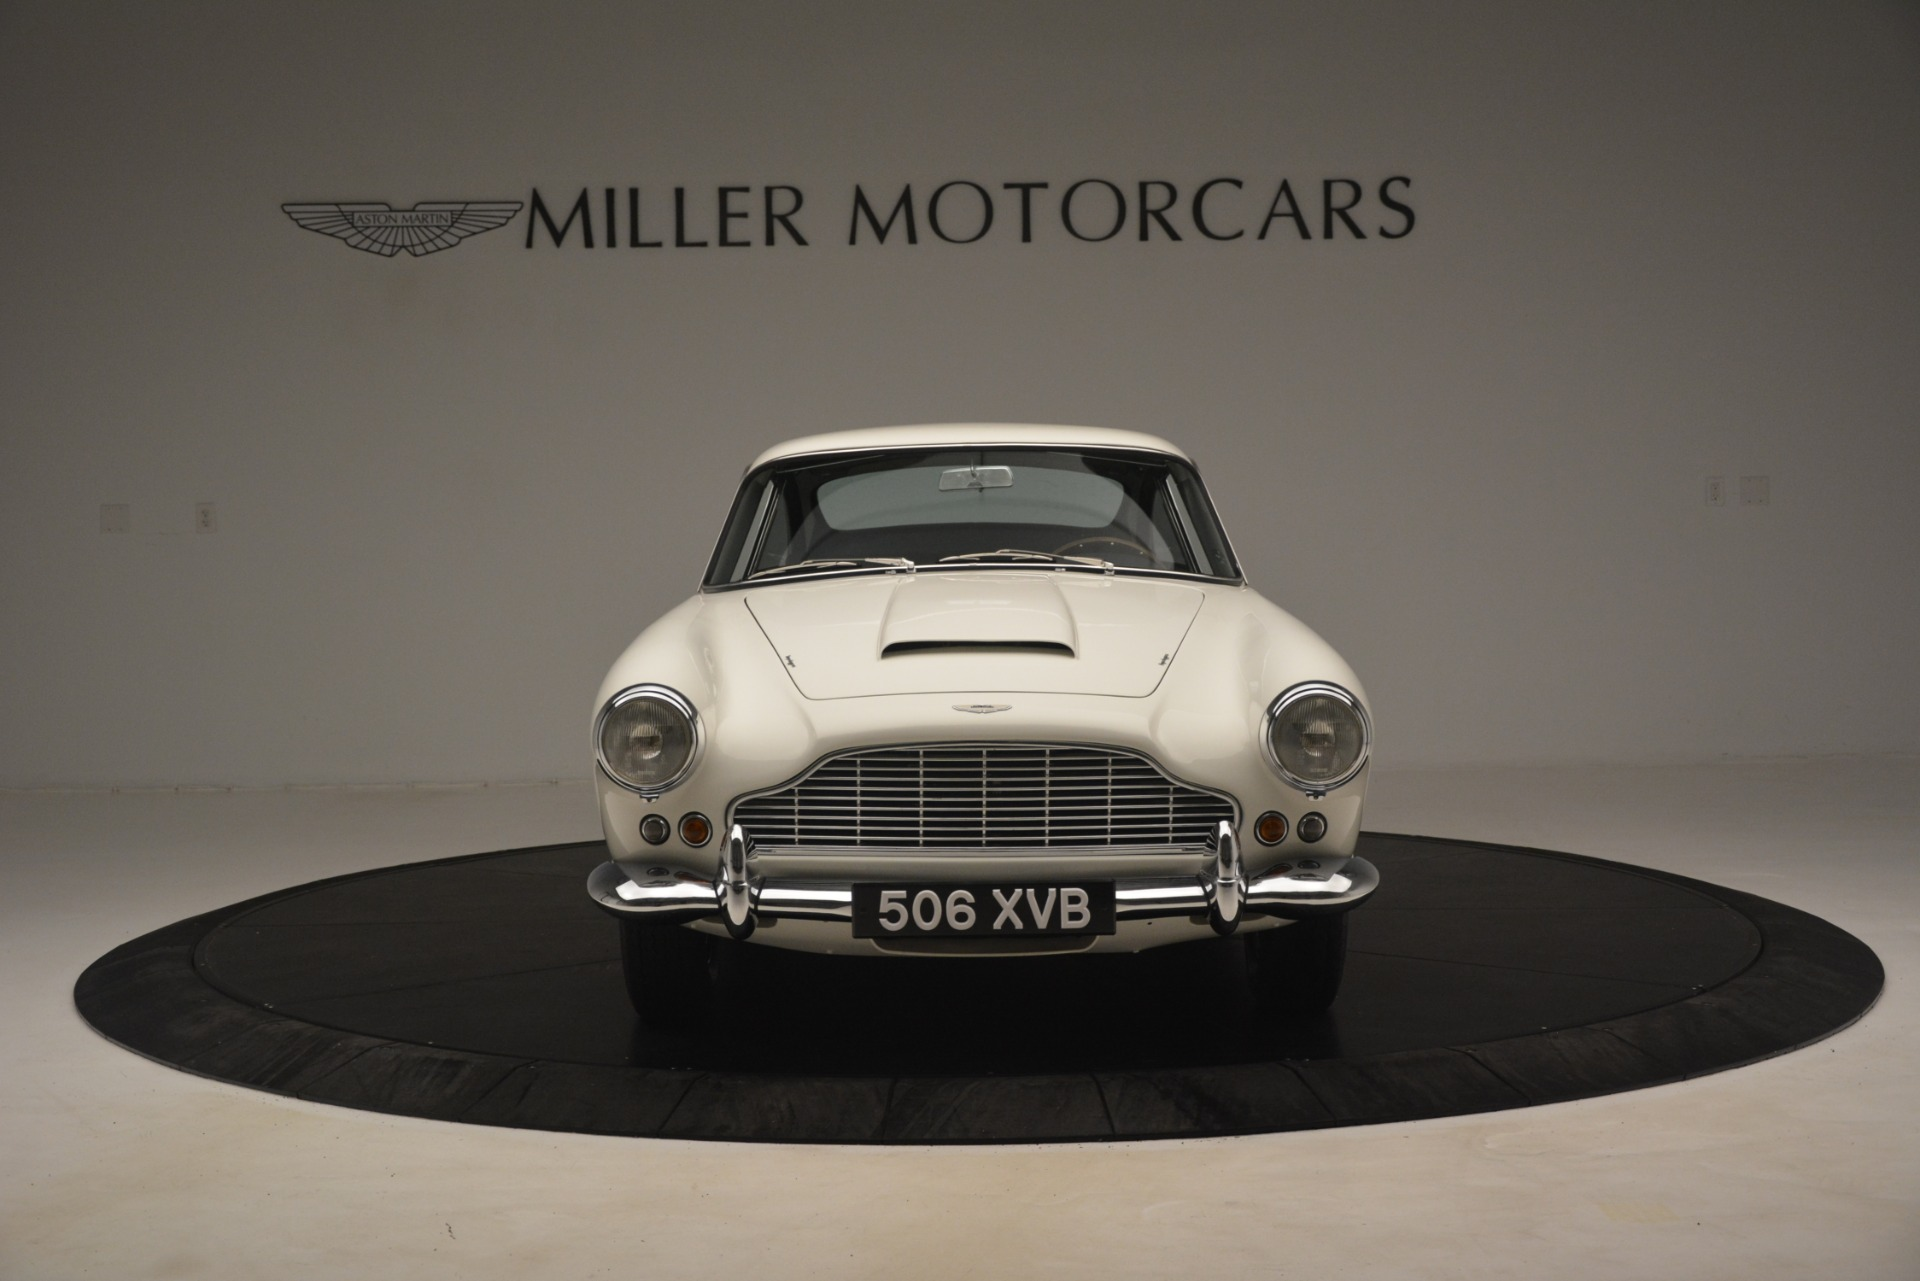 Pre Owned 1961 Aston Martin Db4 Series Iv Coupe For Sale 599 900 Aston Martin Of Greenwich Stock 7567c